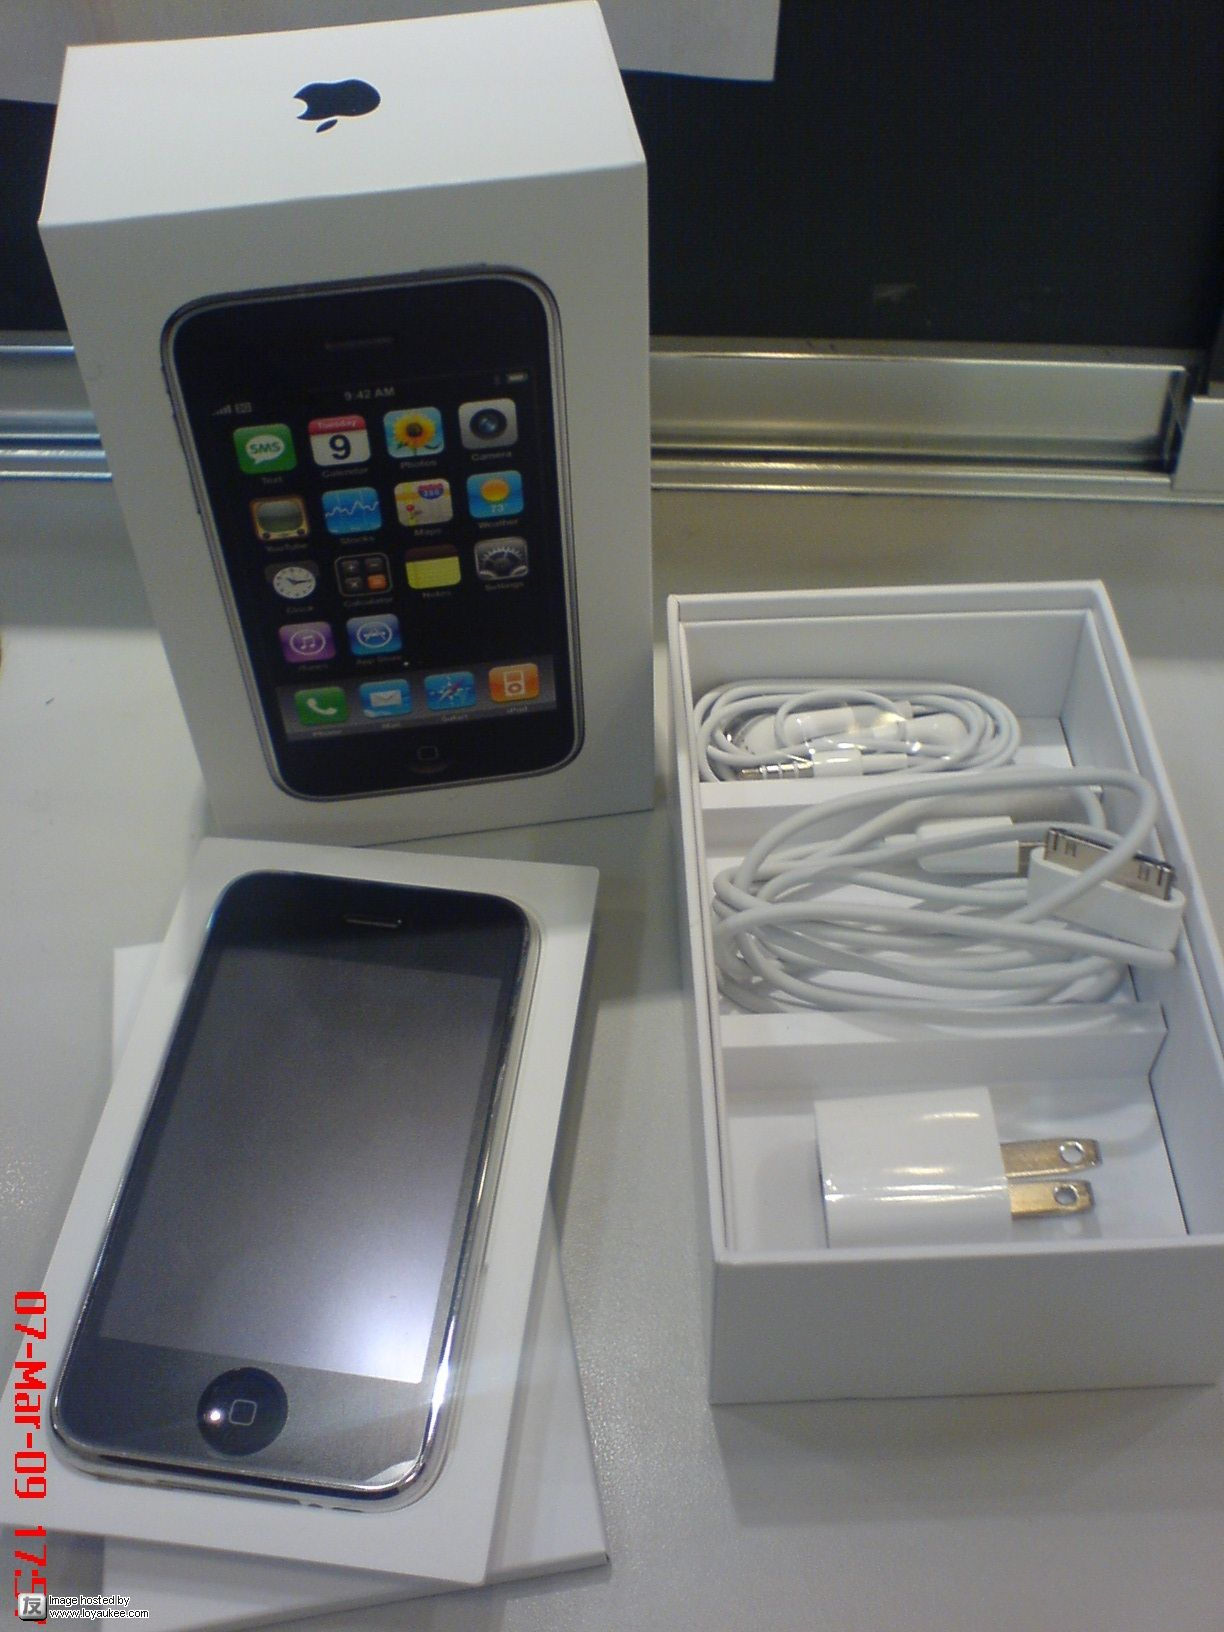 iphone 4 unlocked for sale for 16gb iphone like new unlocked 2833